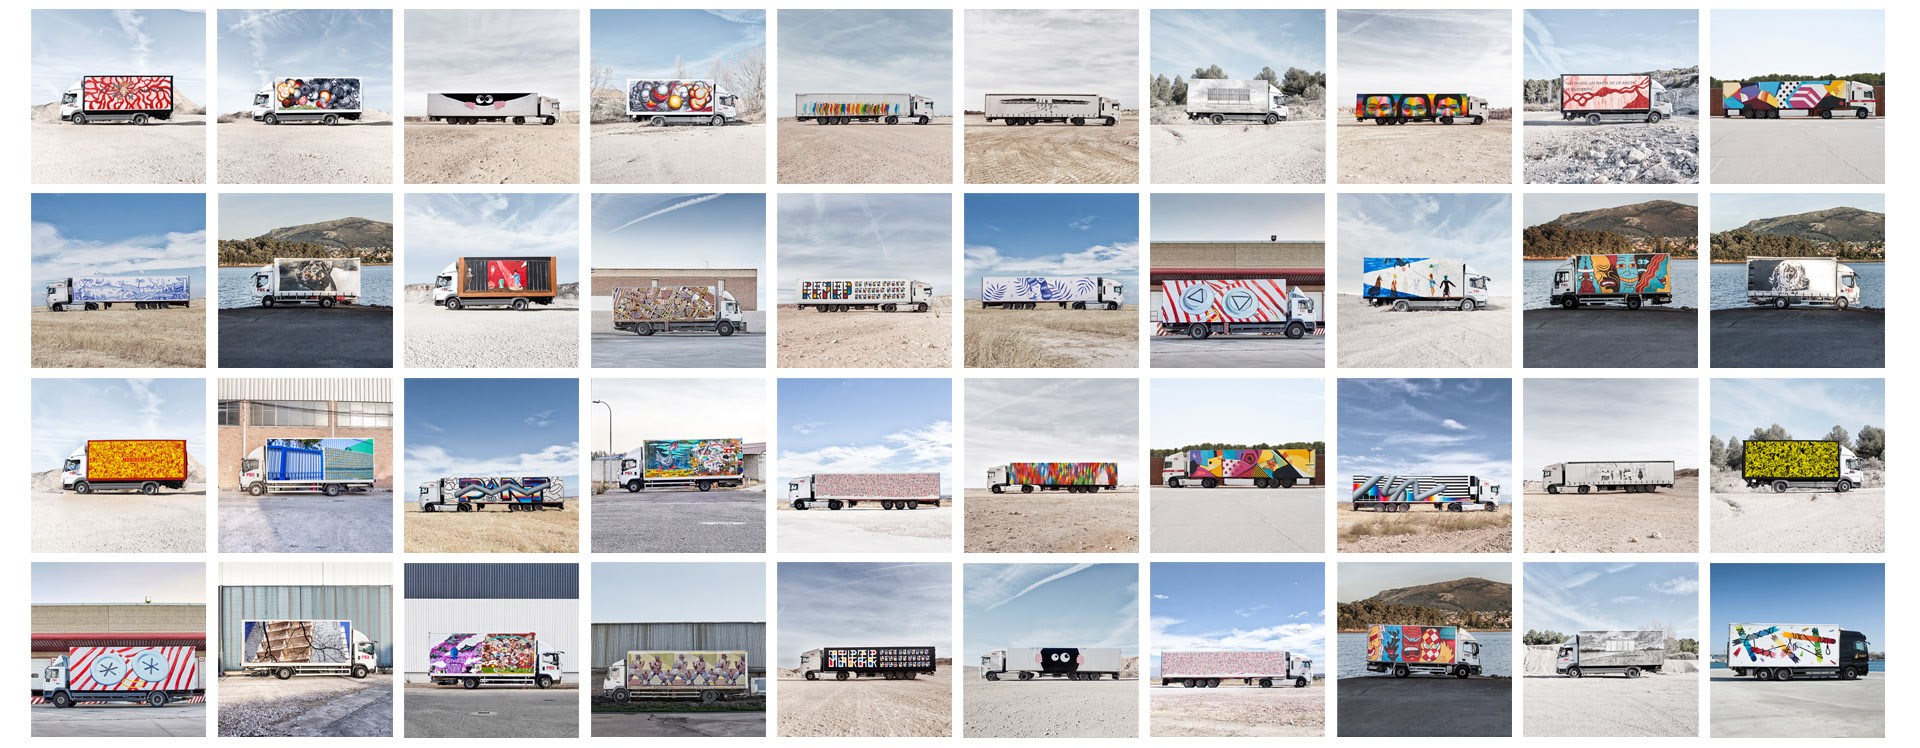 TRUCK ART PROJECT - BEUSUAL